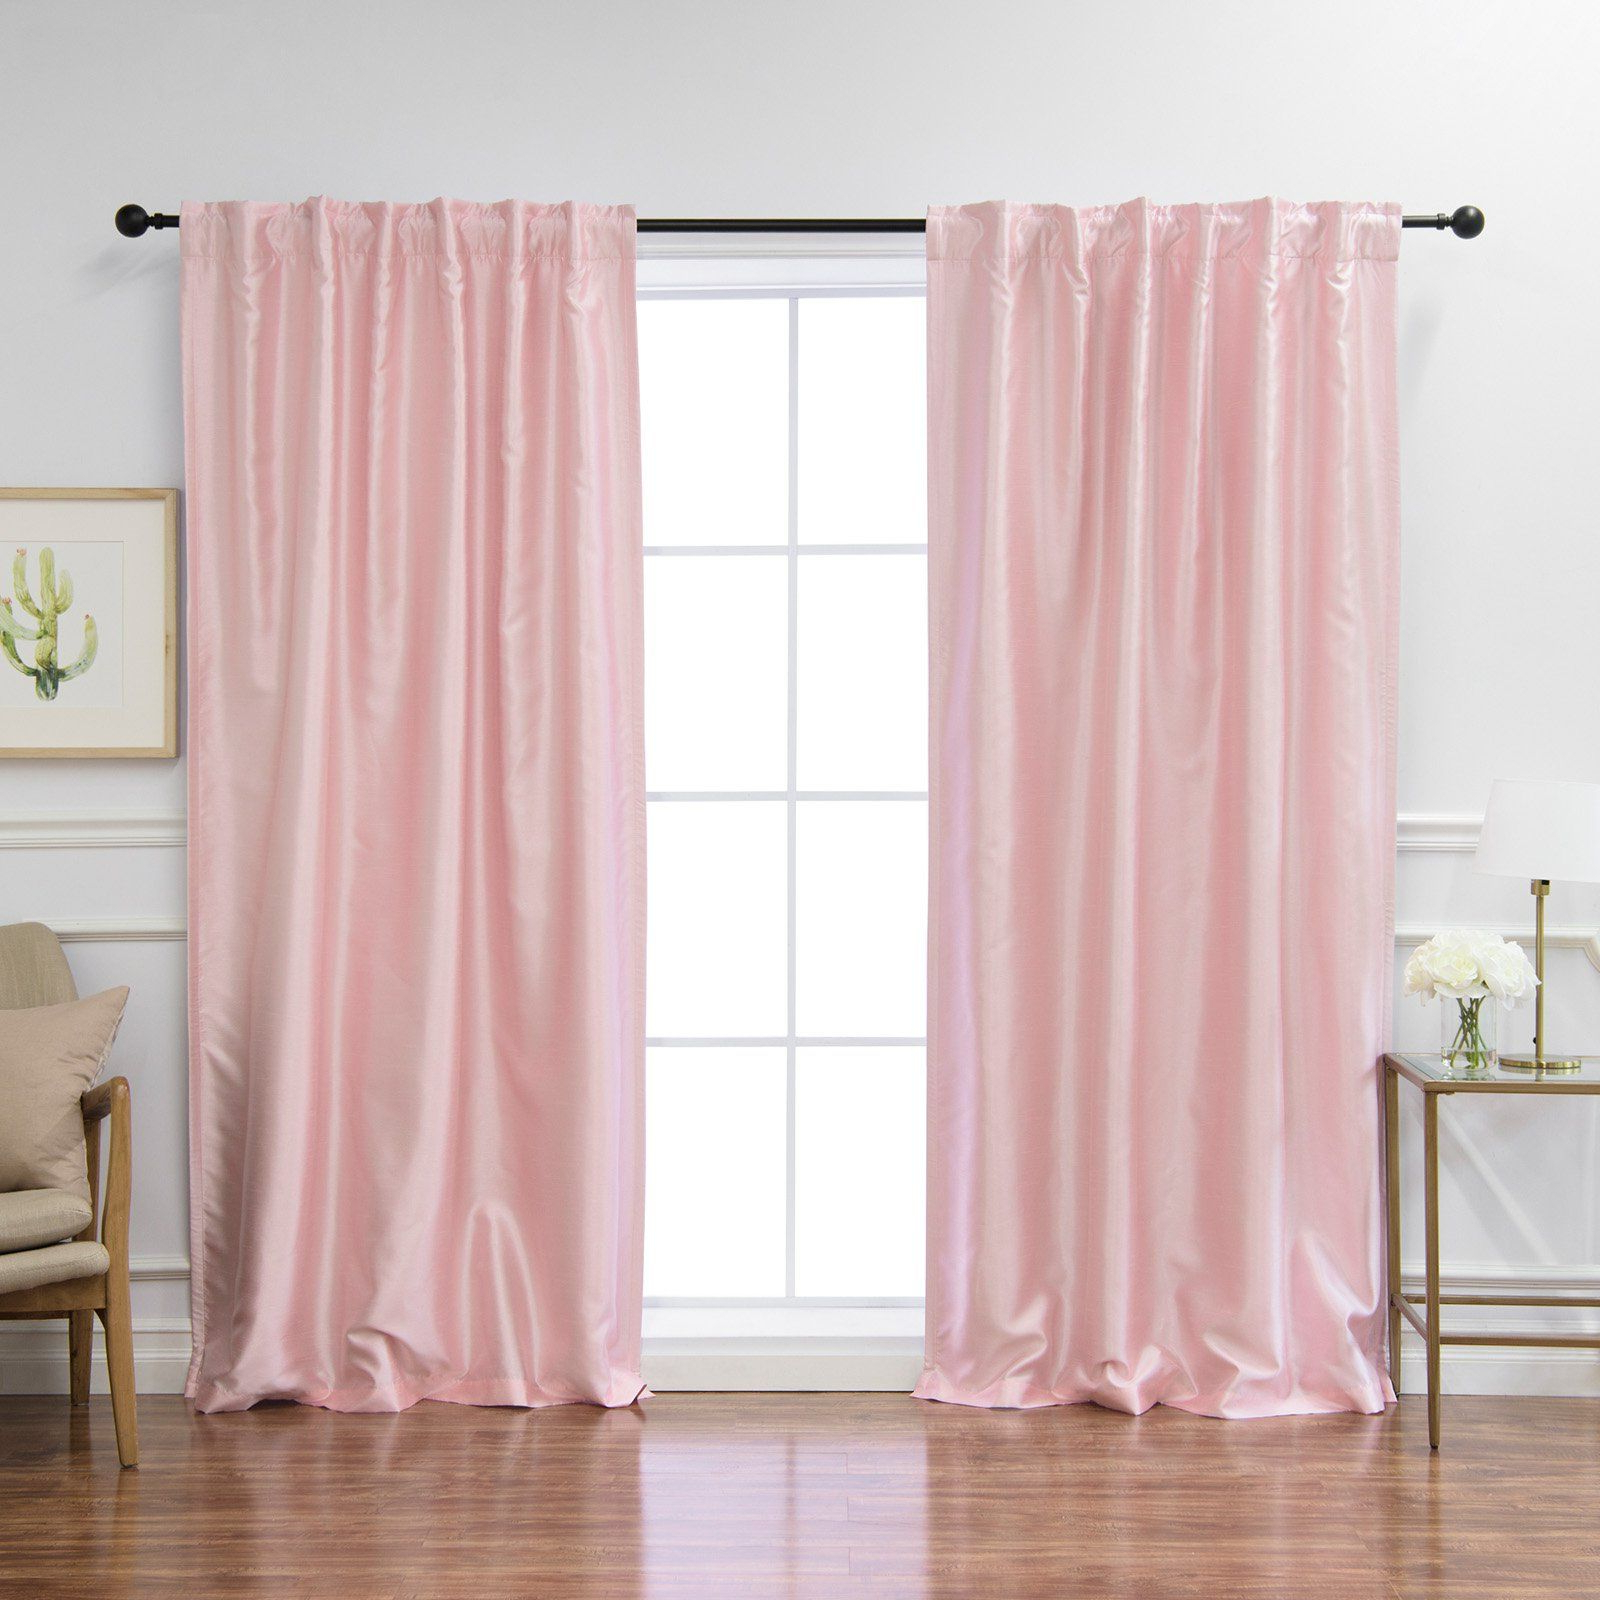 Trendy Thermal Rod Pocket Blackout Curtain Panel Pairs With Regard To Best Home Fashion Faux Silk Blackout Curtain Panel Pair (View 16 of 20)